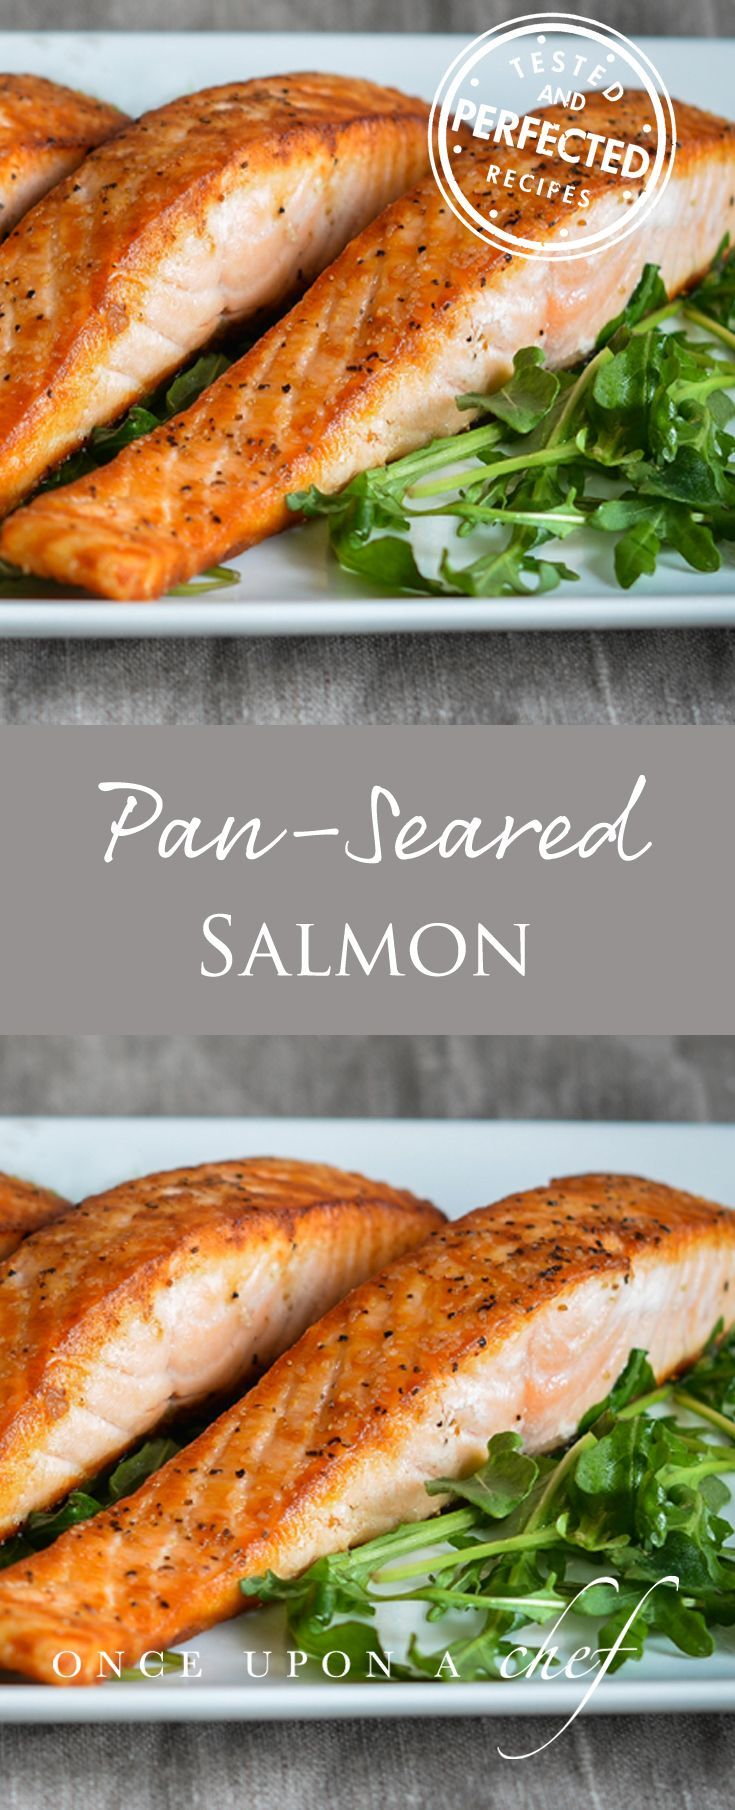 Restaurant-Style Pan Seared Salmon - Once Upon a Chef